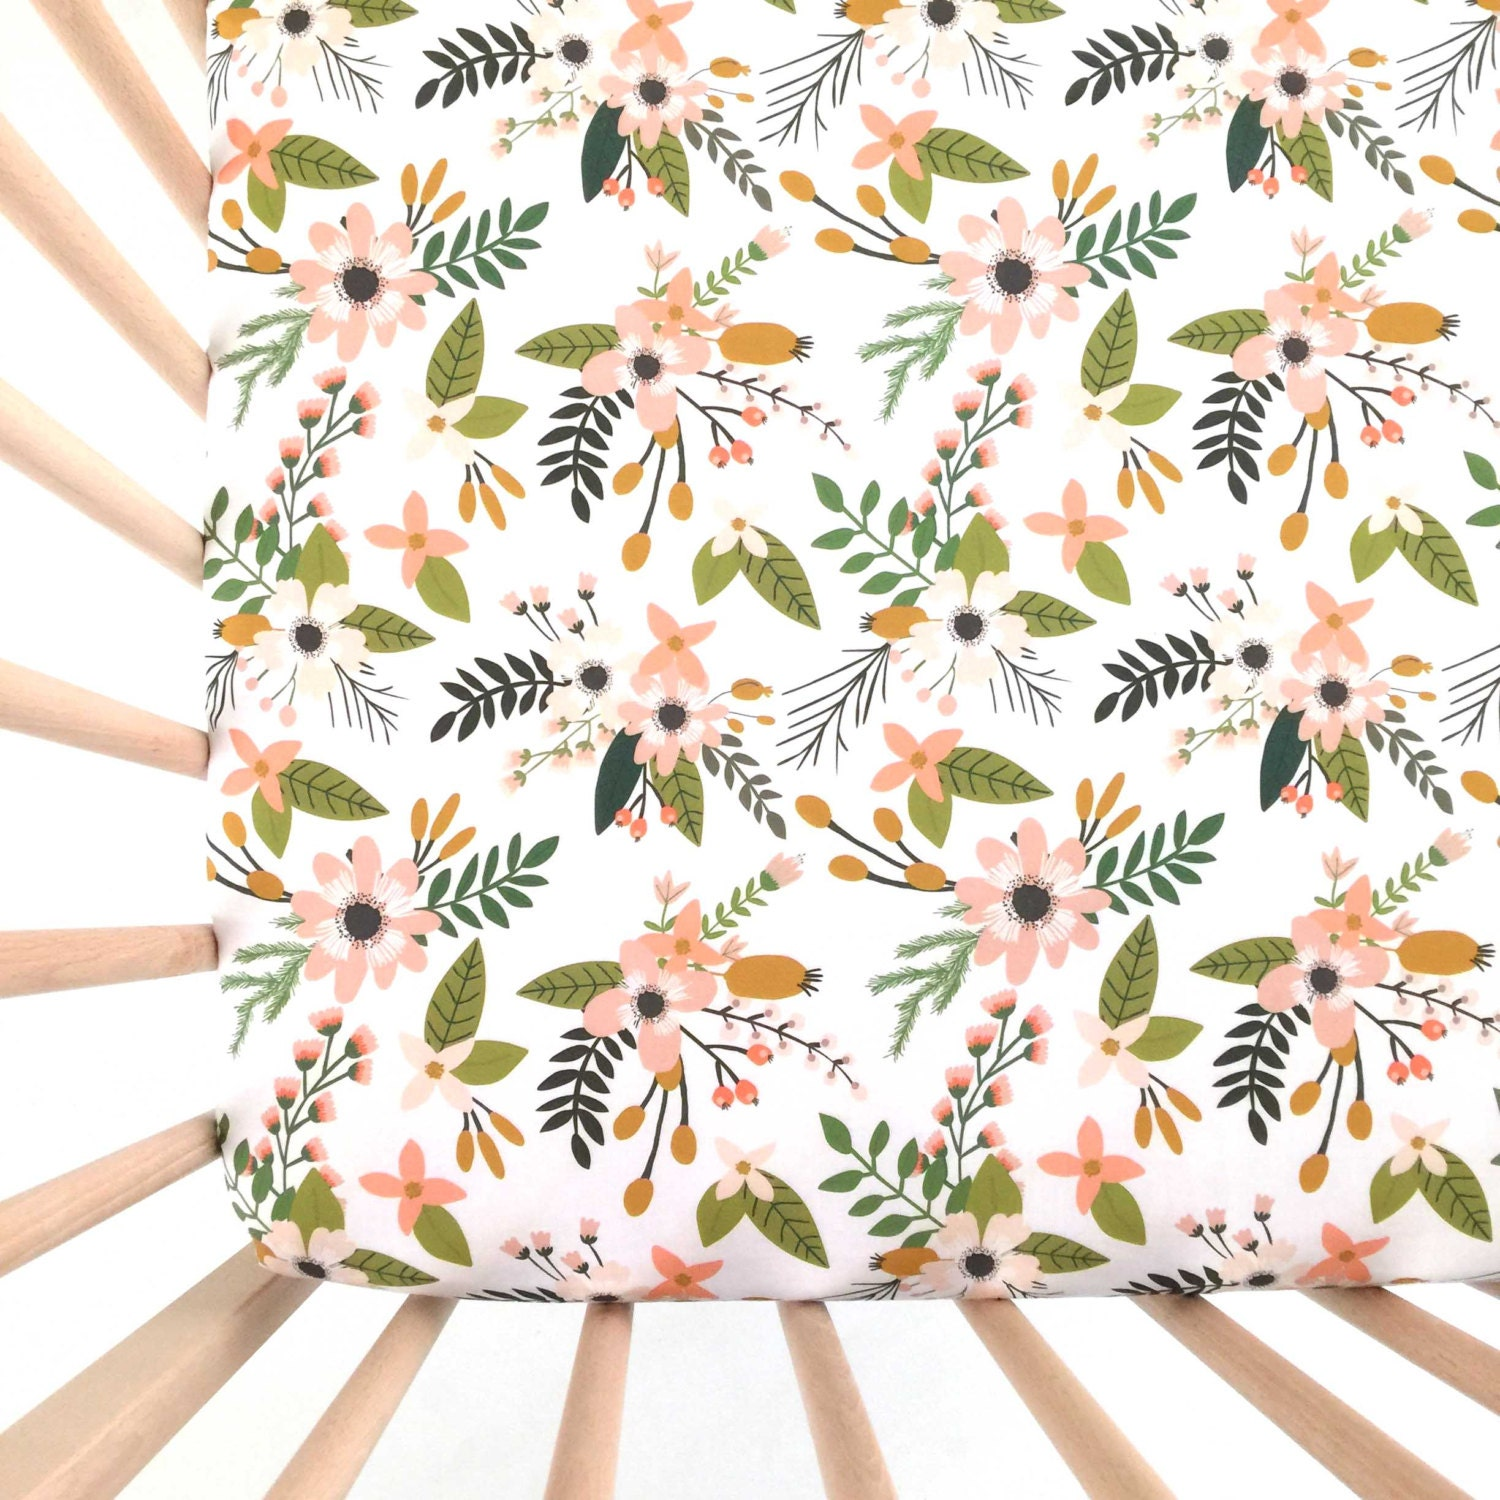 Crib bumper for sale philippines - Crib Sheet Blush Sprigs And Blooms Fitted Crib Sheet Baby Bedding Crib Bedding Minky Crib Sheet Crib Sheets Floral Crib Sheet